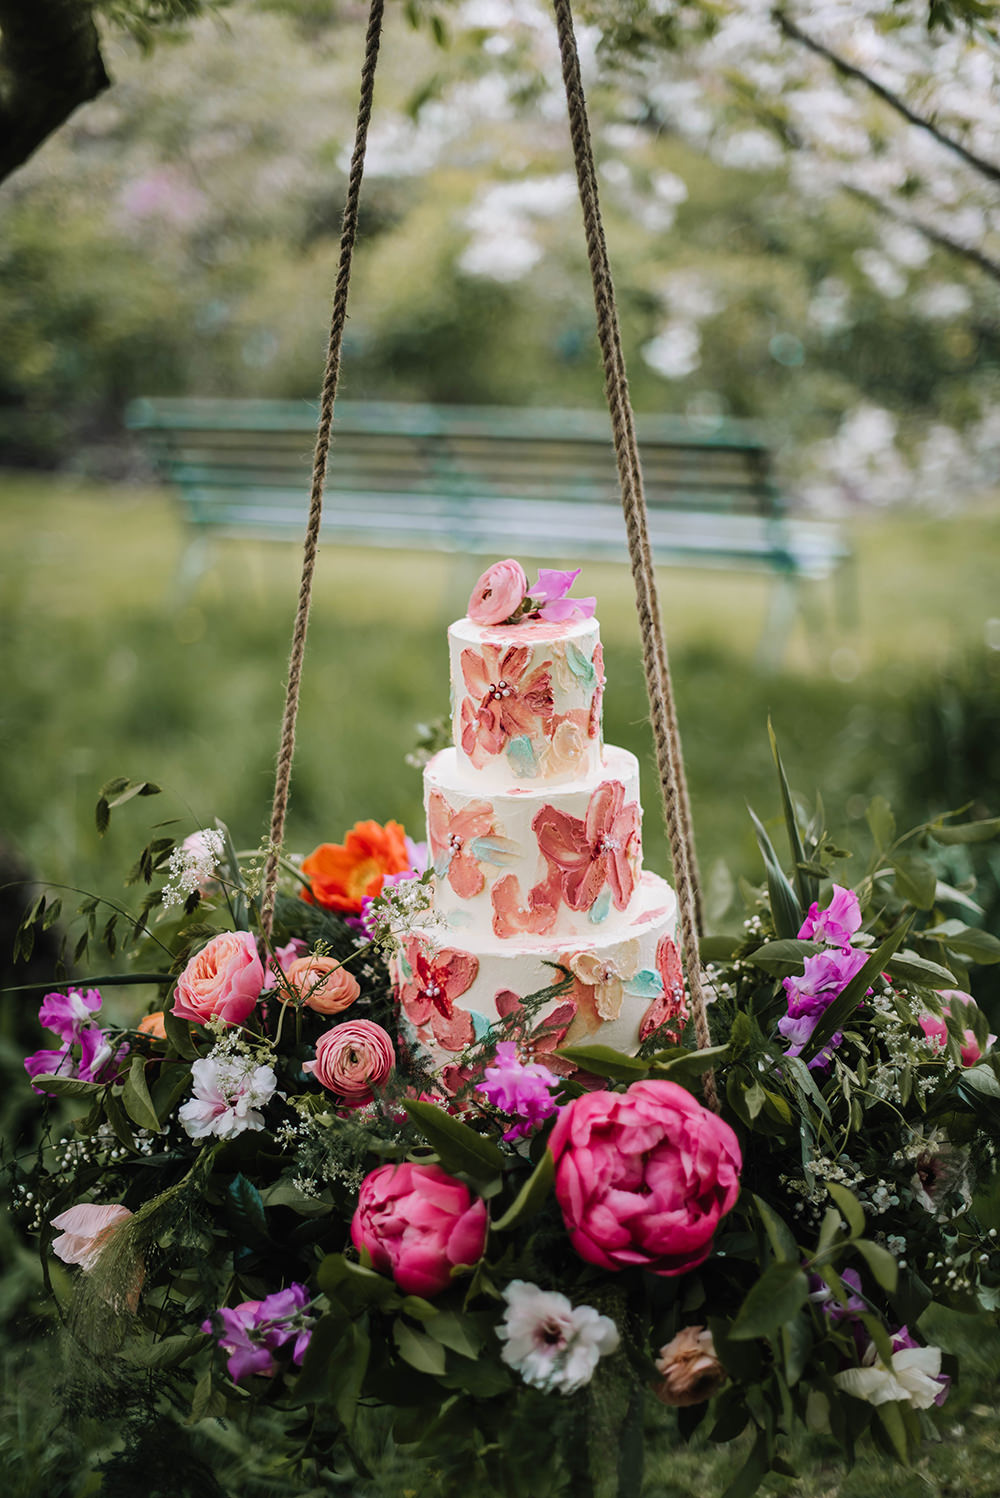 Brush Stroke Palette Artistic Cake Table Suspended Hanging Swing Flowers Grenery Pink Coral Floral Wedding Ideas Birgitta Zoutman Photography